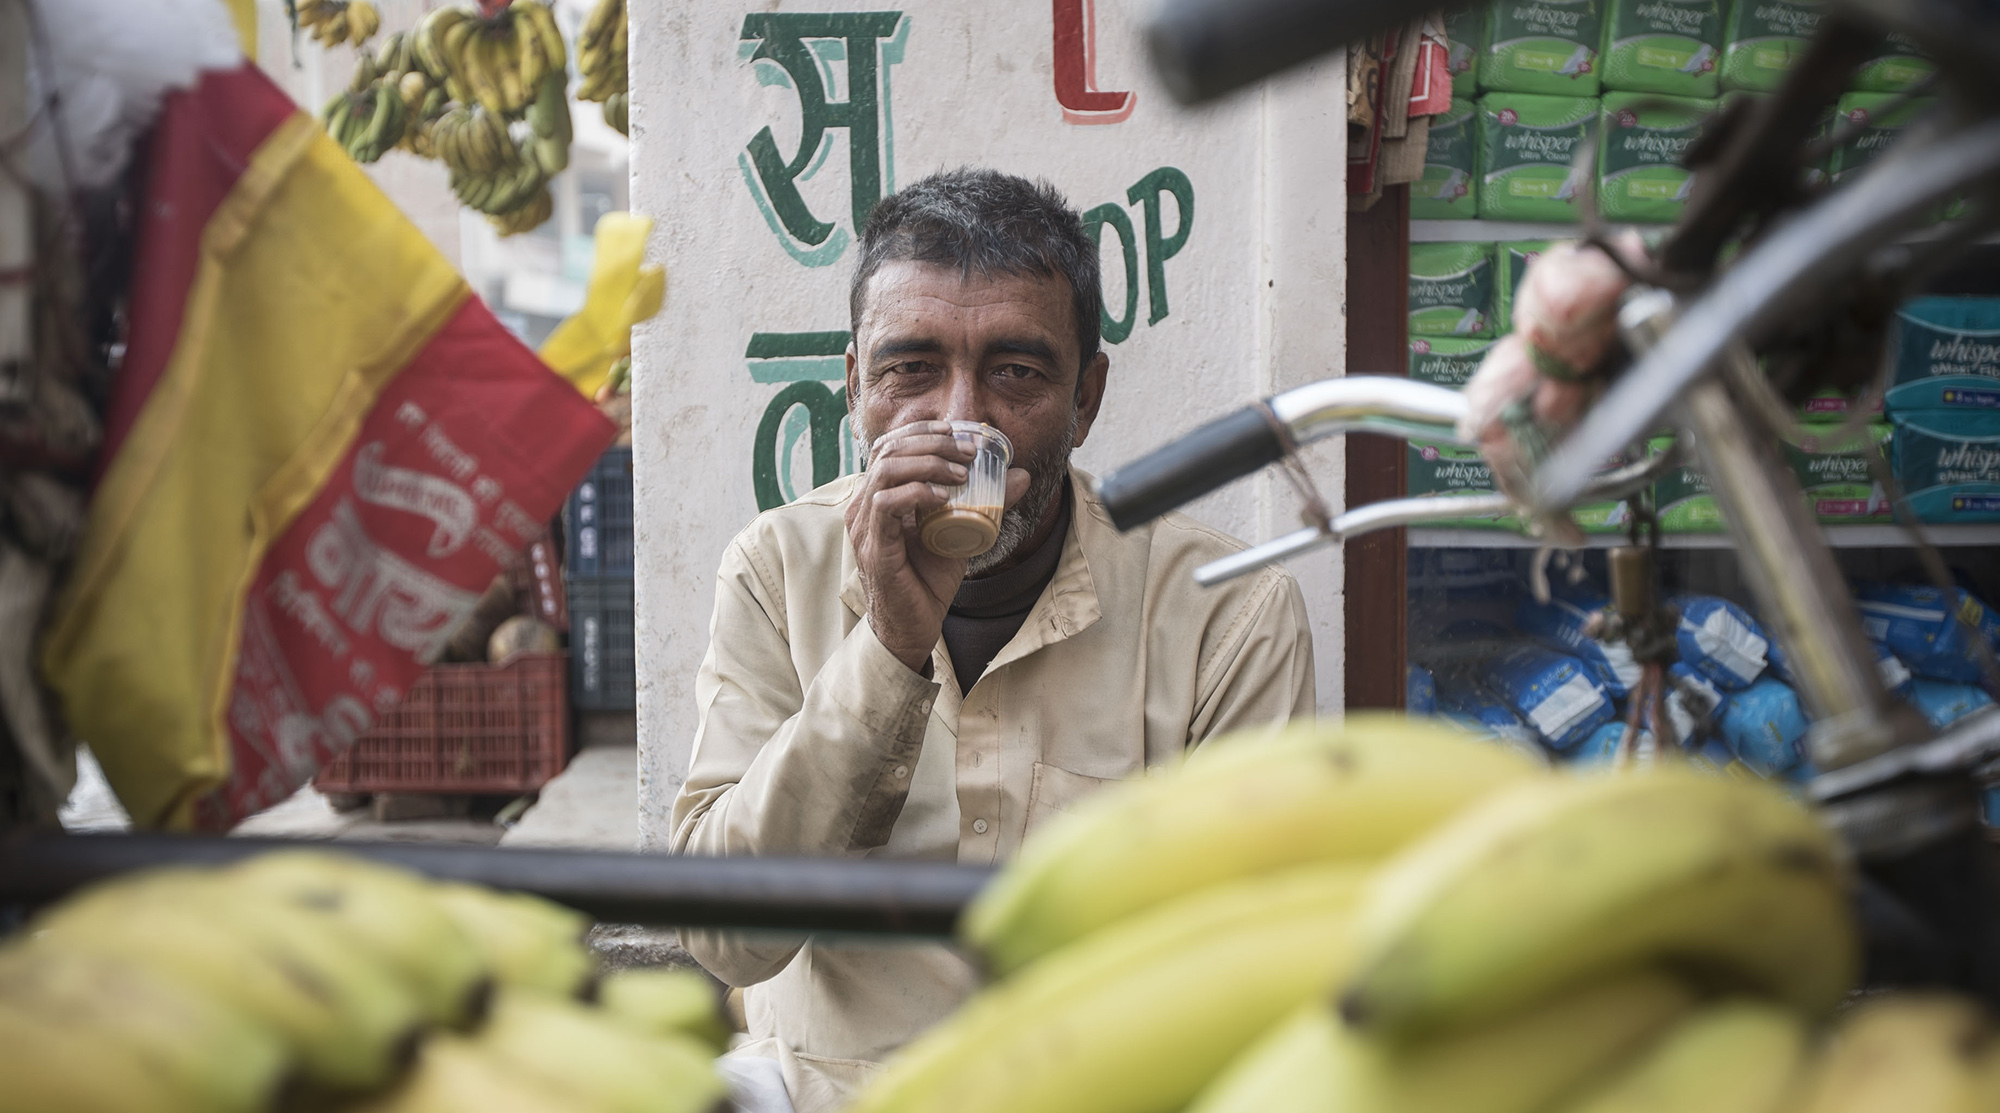 A local fruit vendor in Kathmandu having a cup of masala chai in the morning.